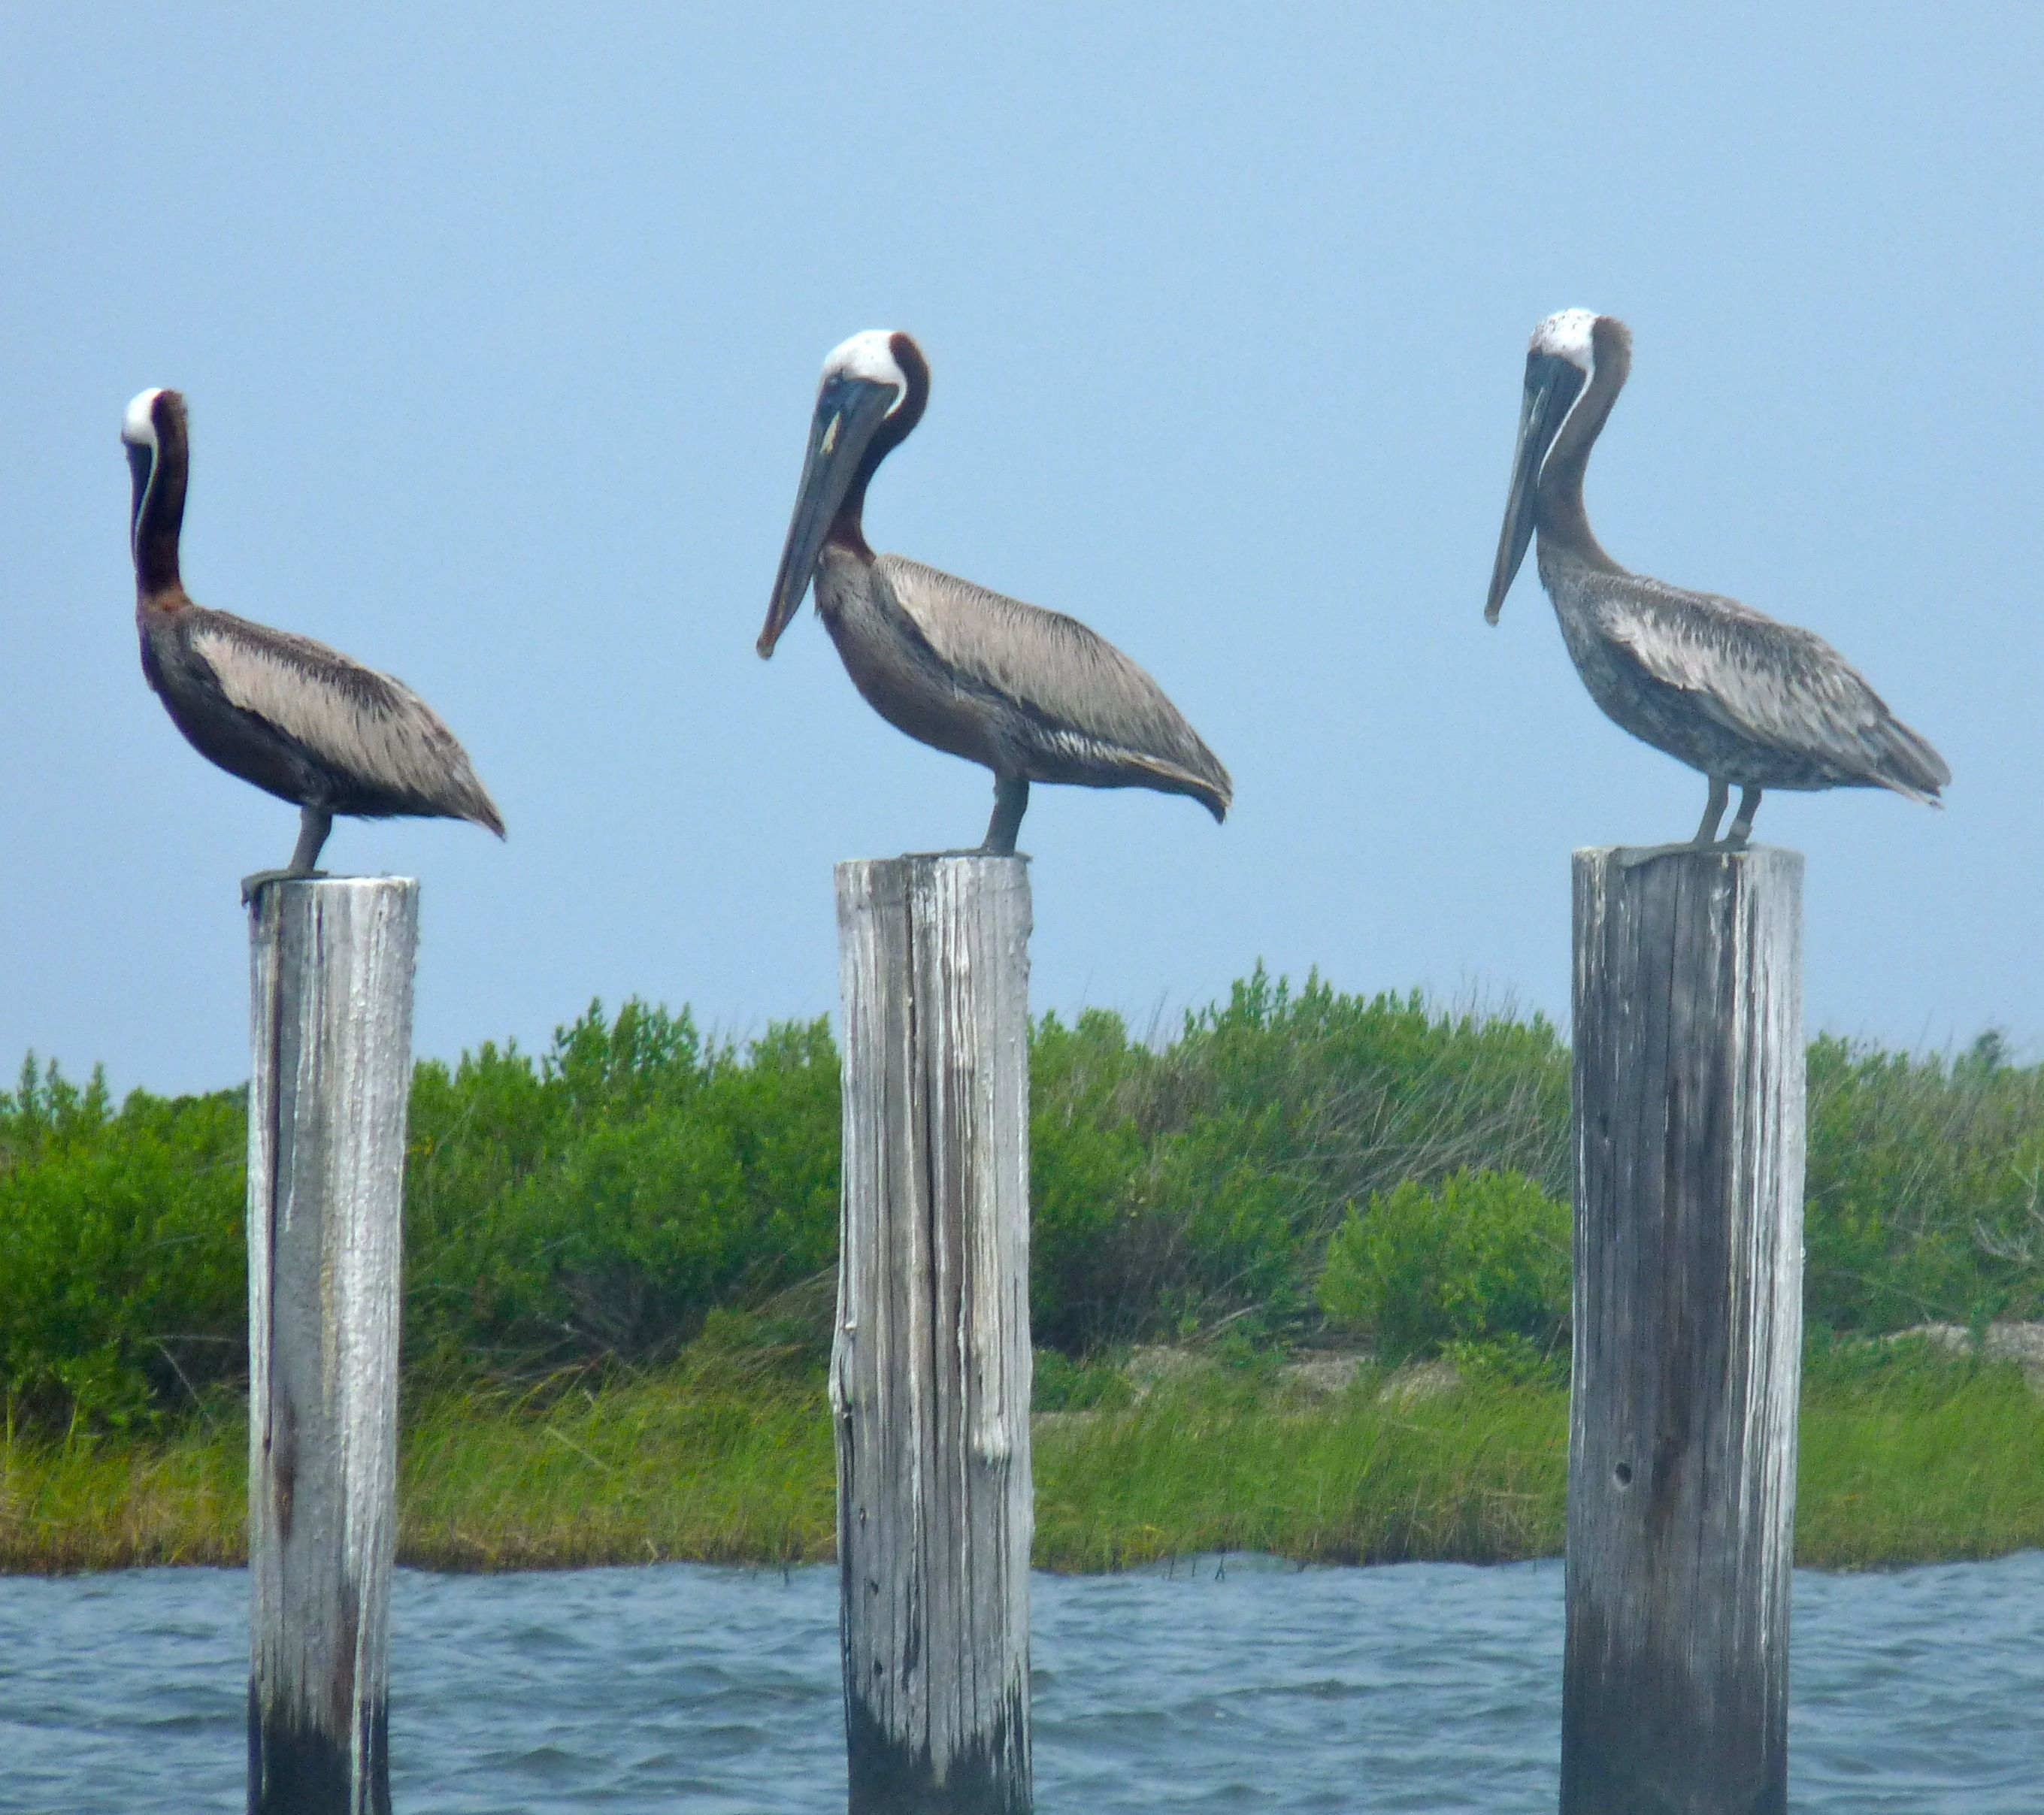 Pelicans are an everyday sight that we never get tired of in Carolina Beach! Stay with us at the Beacon House Inn and see them for yourself!